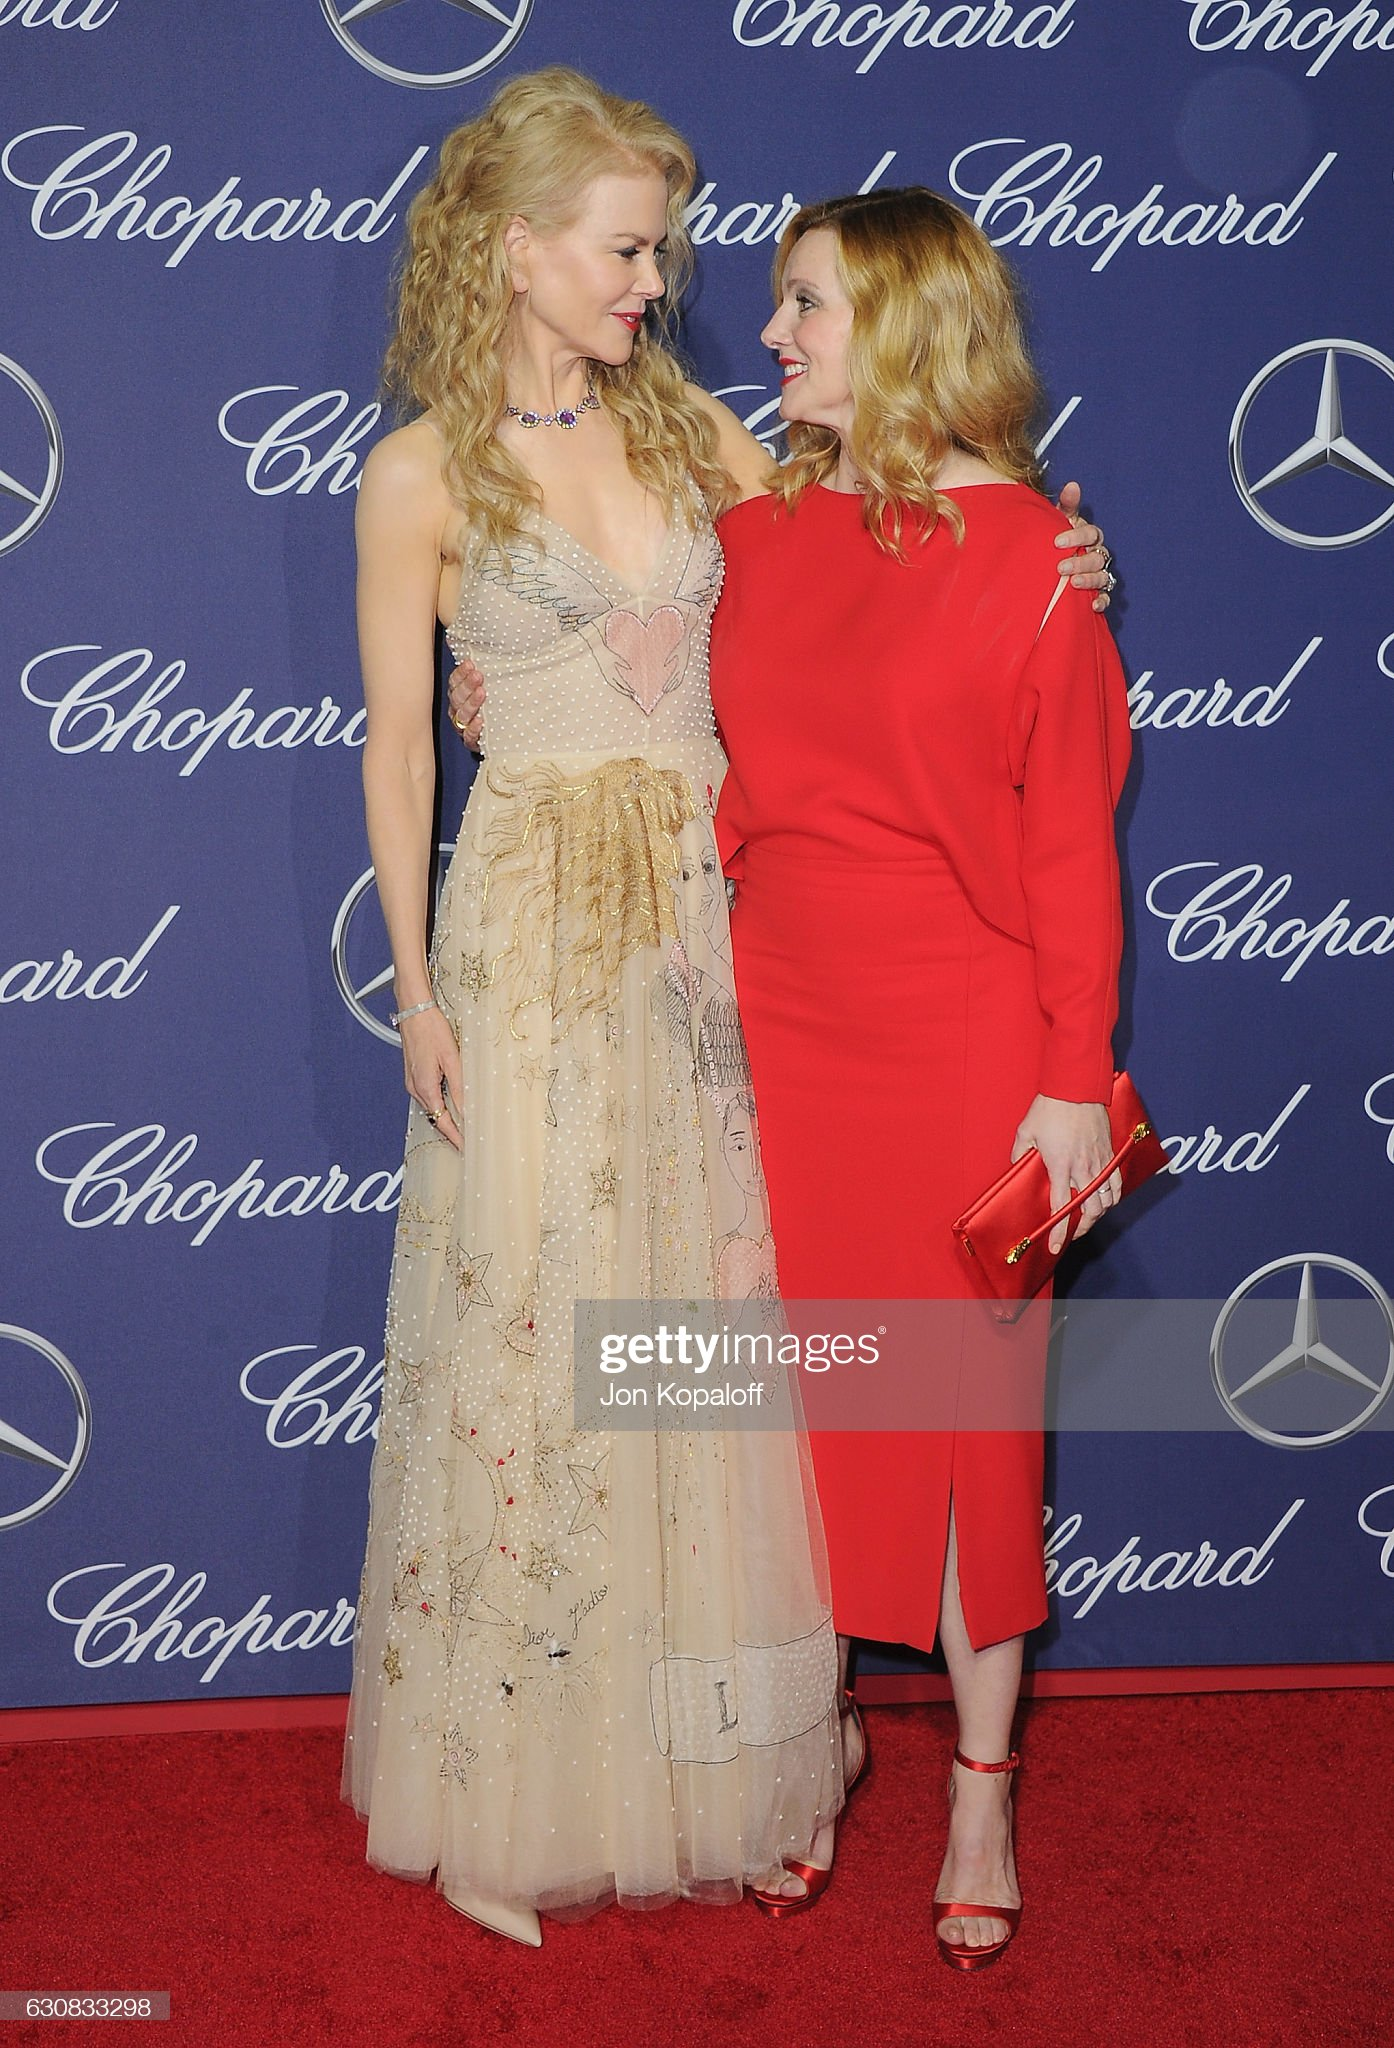 ¿Cuánto mide Laura Linney? - Altura - Real height Actress-nicole-kidman-and-actress-laura-linney-arrive-at-the-28th-picture-id630833298?s=2048x2048